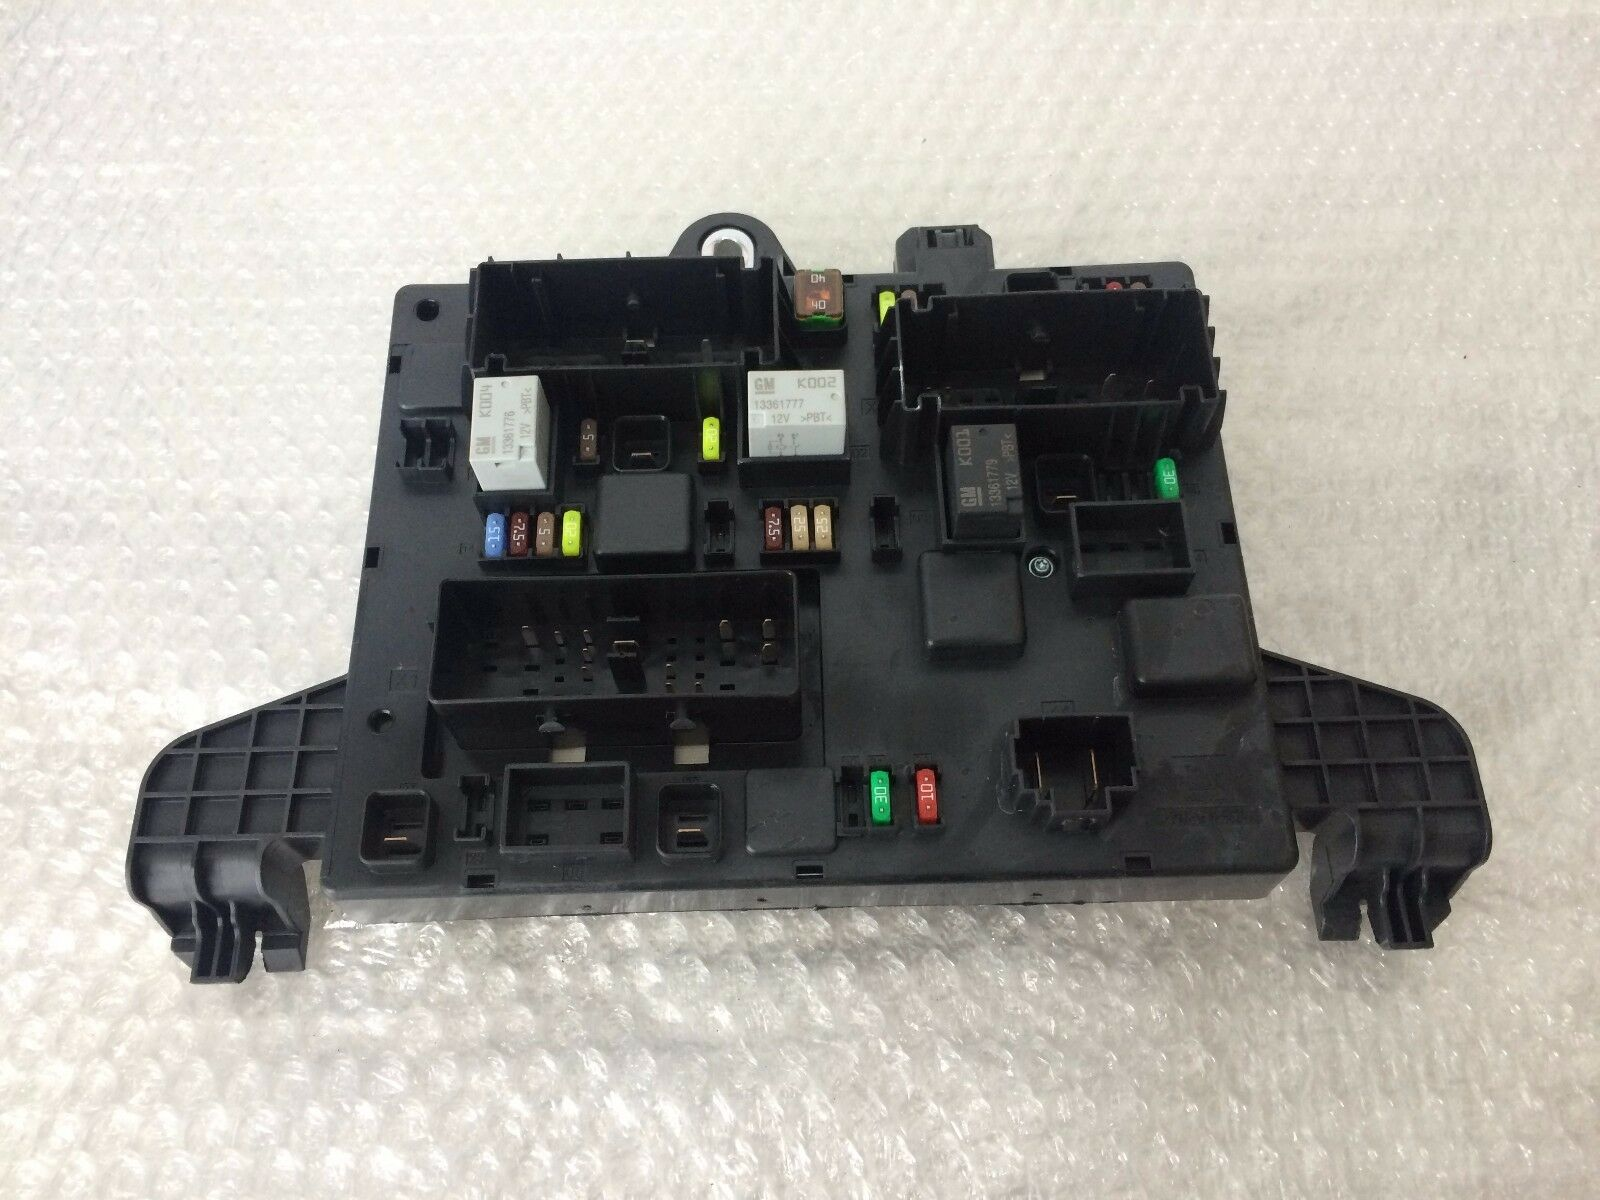 Astra J Rear Fuse Box Trusted Wiring Diagrams Gm Open Vauxhall 2 0 Cdti 160 Bhp Diesel 13302301